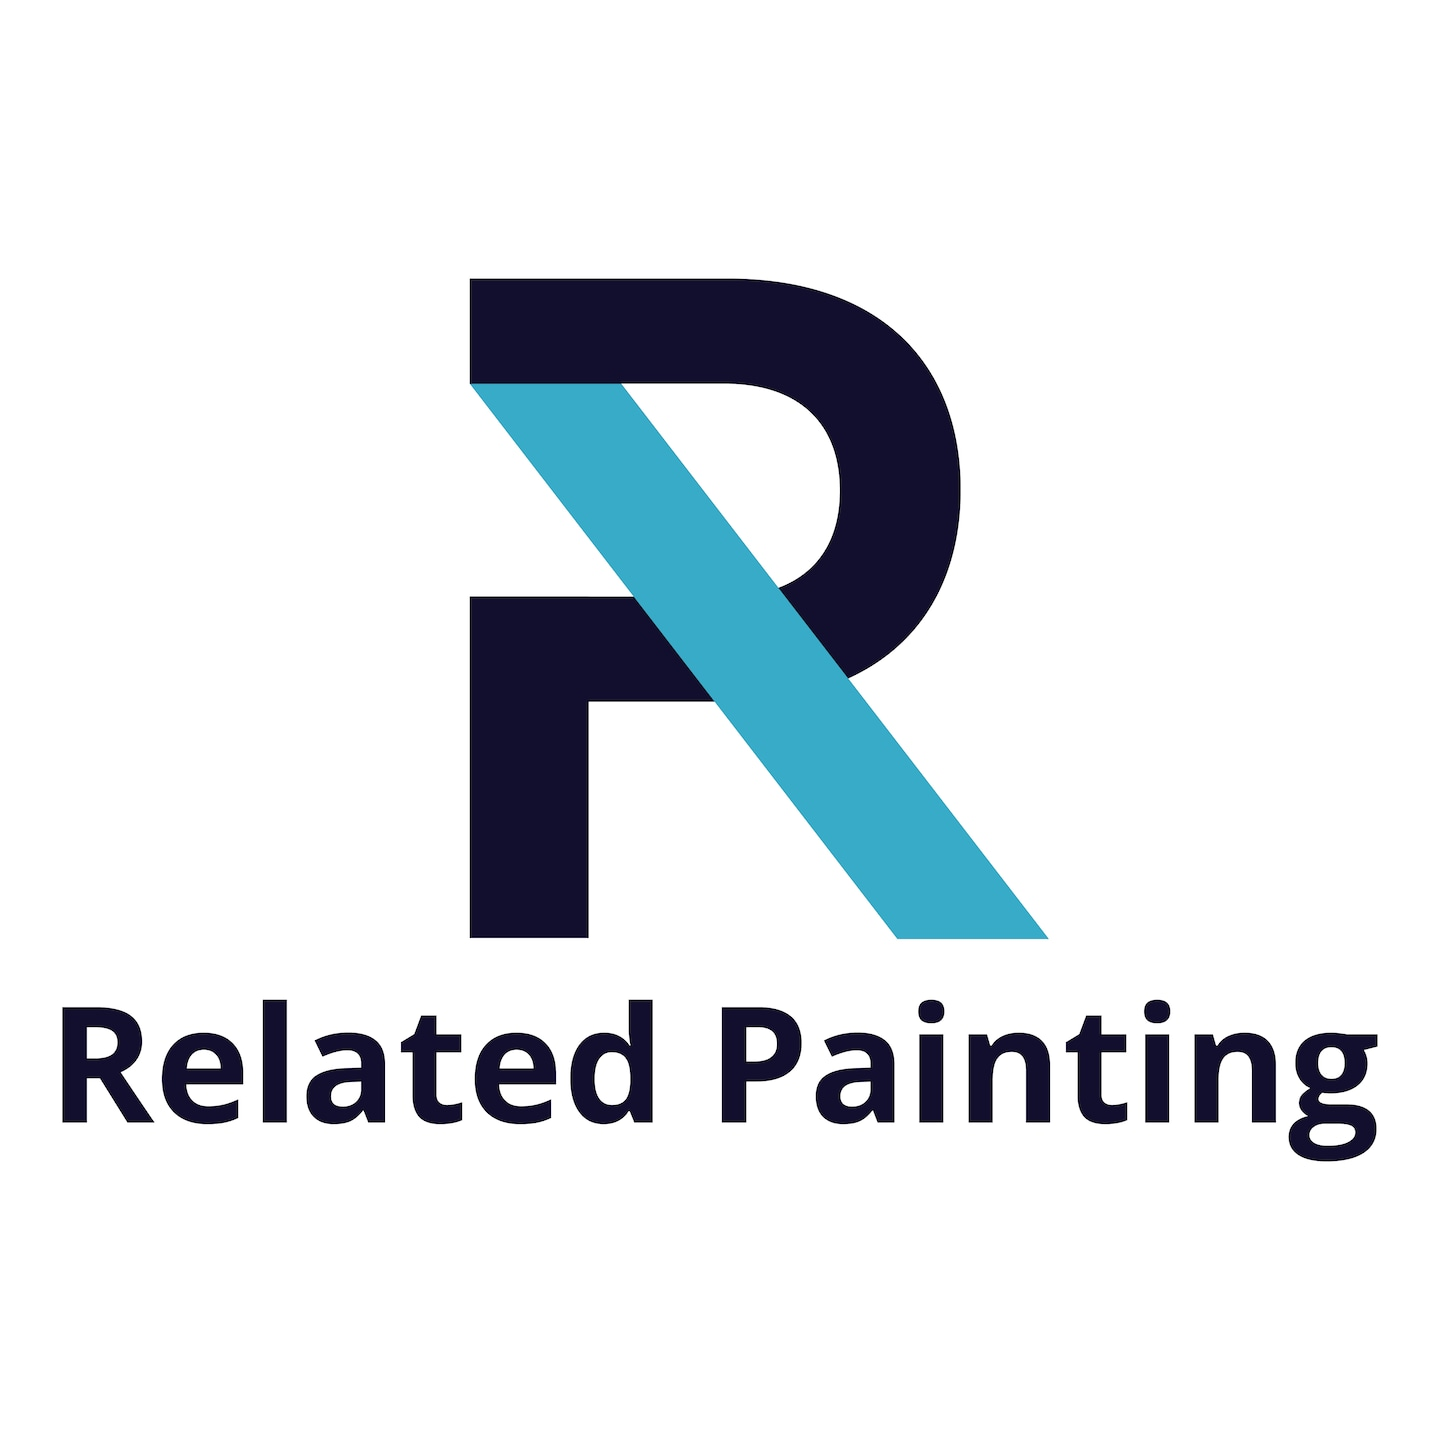 Related Painting LLC